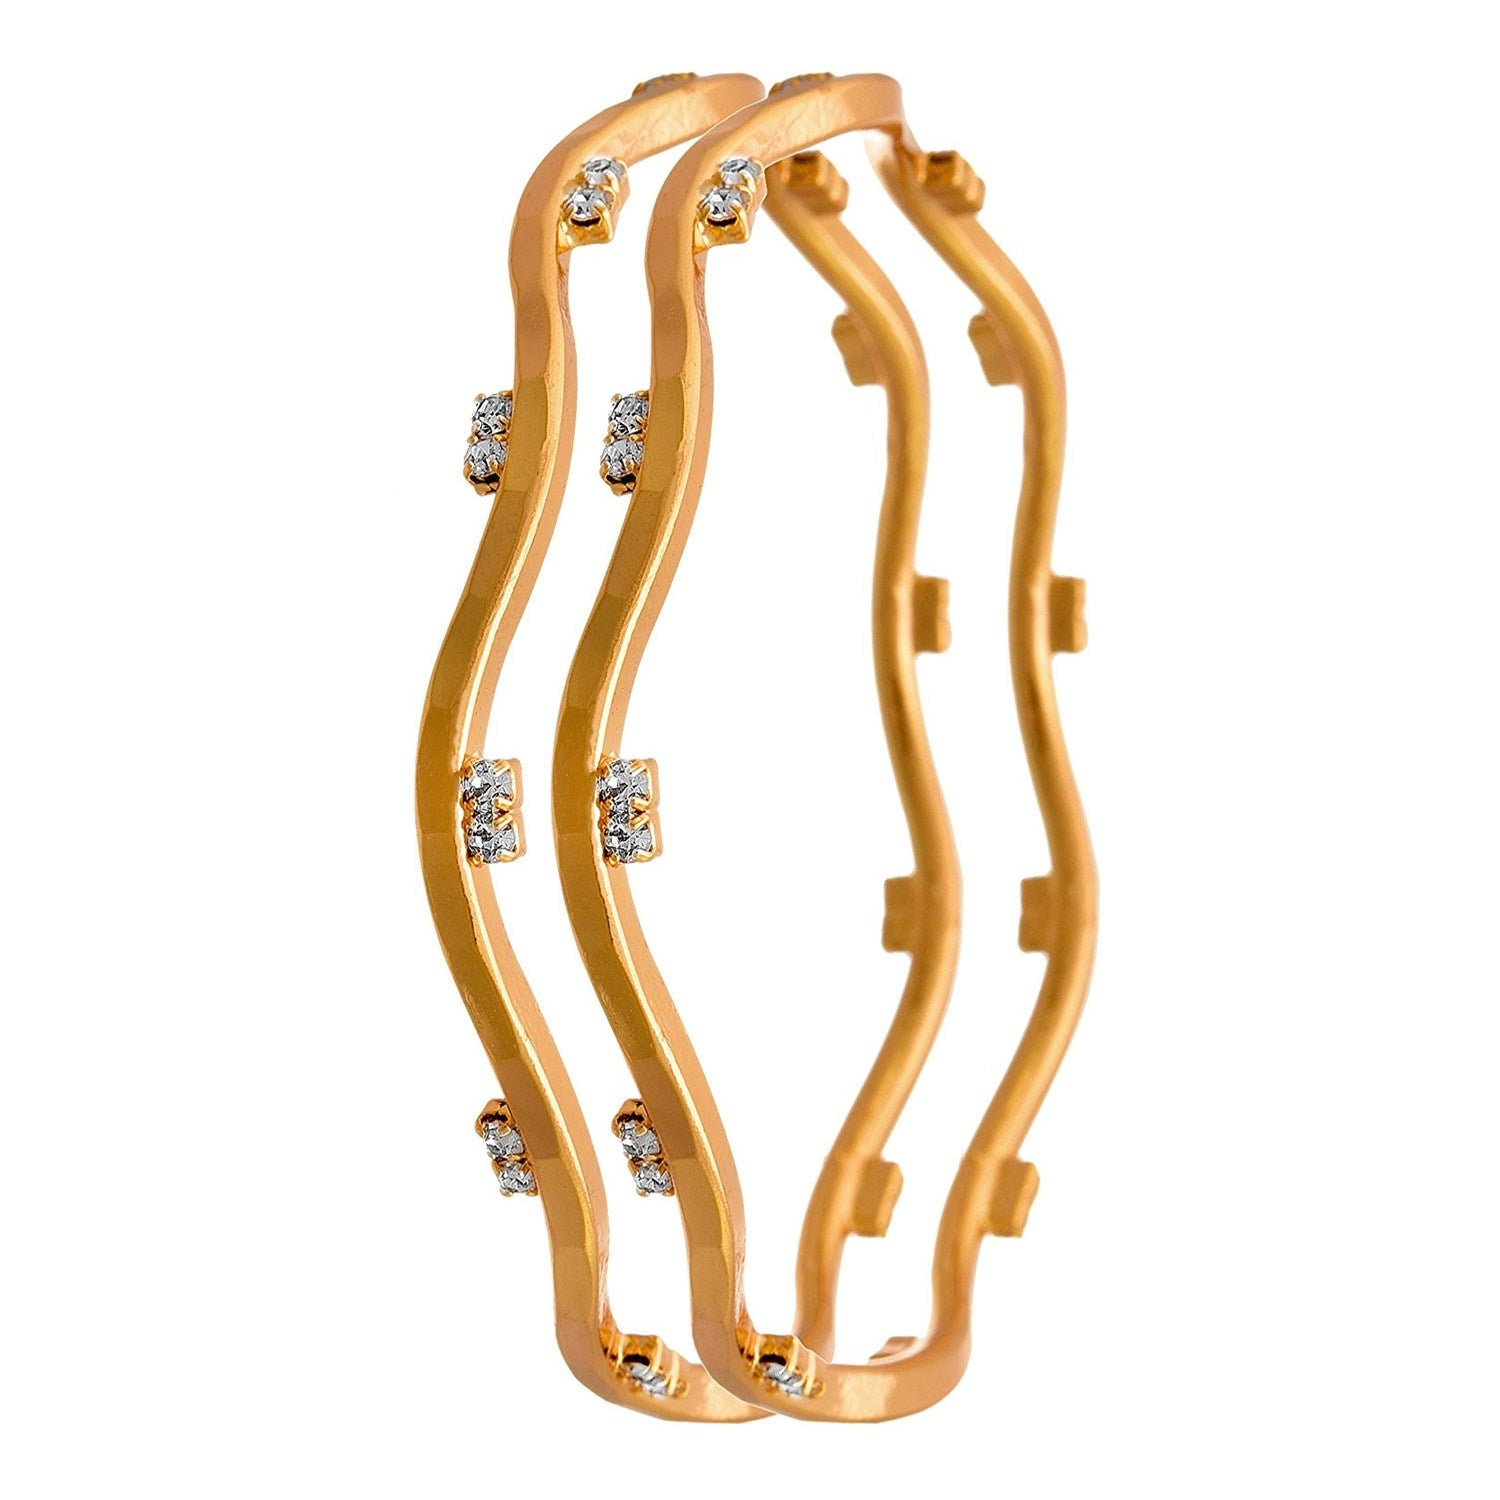 JFL - Traditional Ethnic Fusion One Gram Gold Plated White Austrian Diamond Designer Bangles for Women & Girls